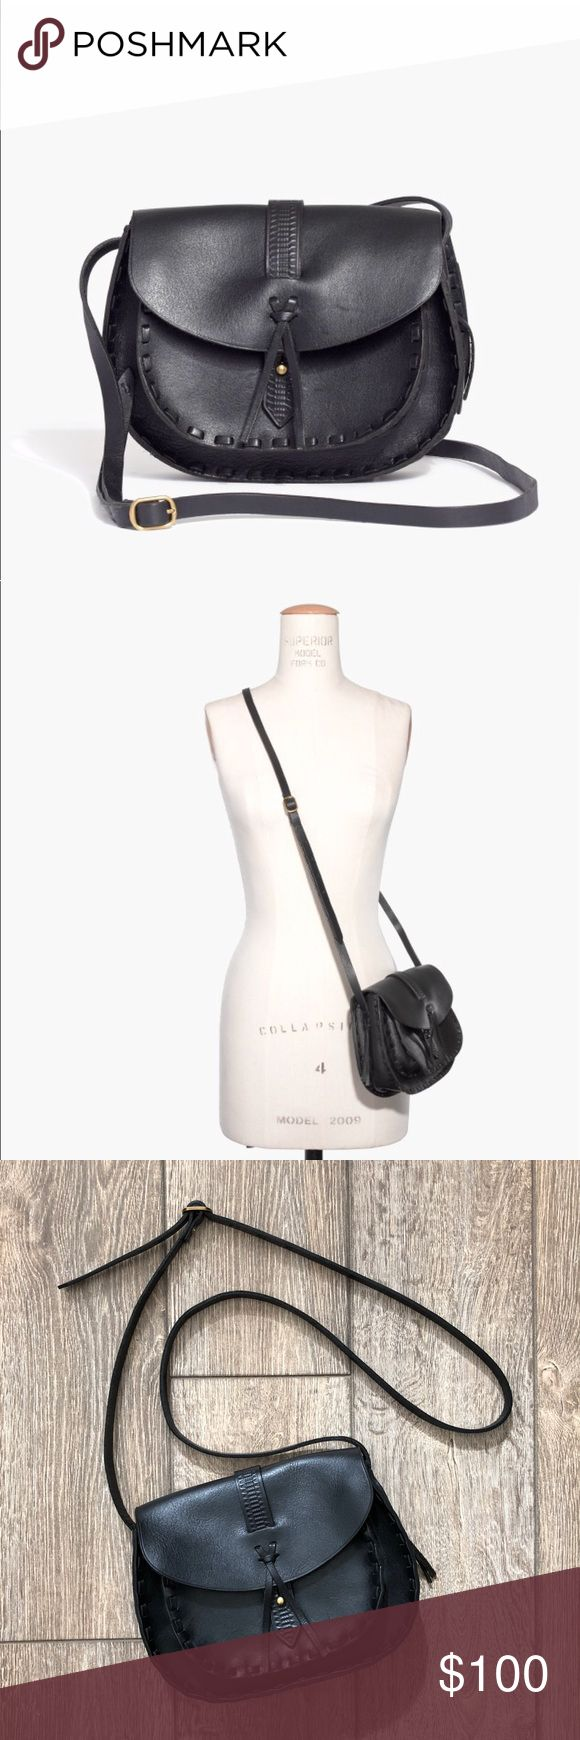 Madewell the asheville saddlebag Pristine condition. Listed because i purchased another similar madewell bag because i wanted something a little bigger. Style# F2132. Price firm. Madewell Bags Crossbody Bags